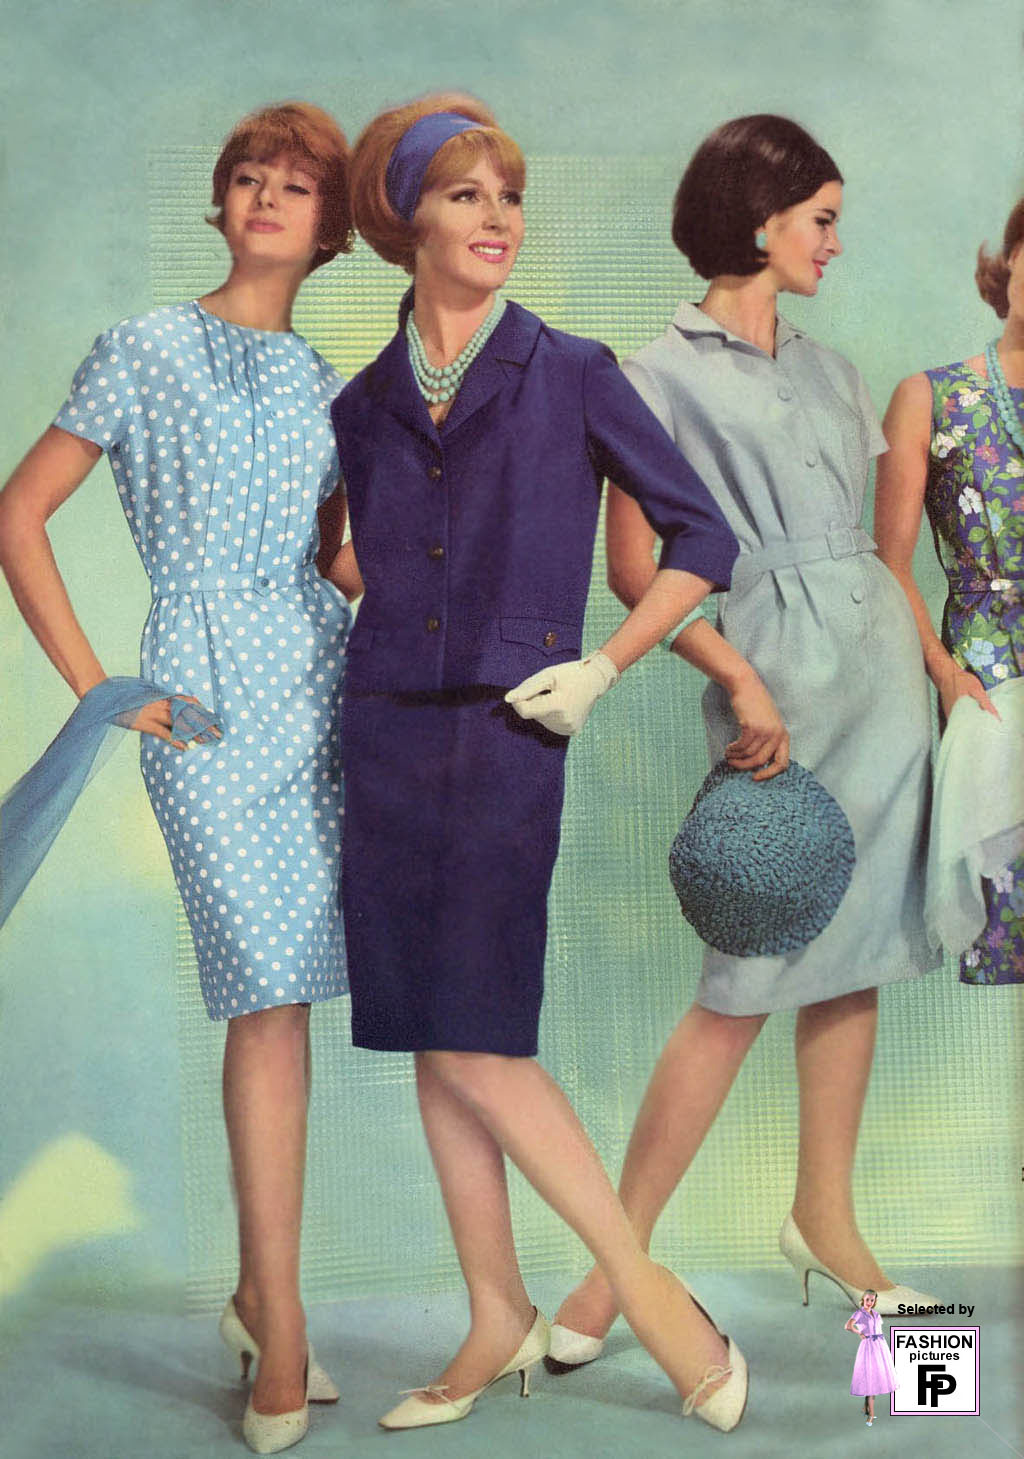 1960 fashion women dresses Early Sports Fashion History to 1960 - Haute Couture